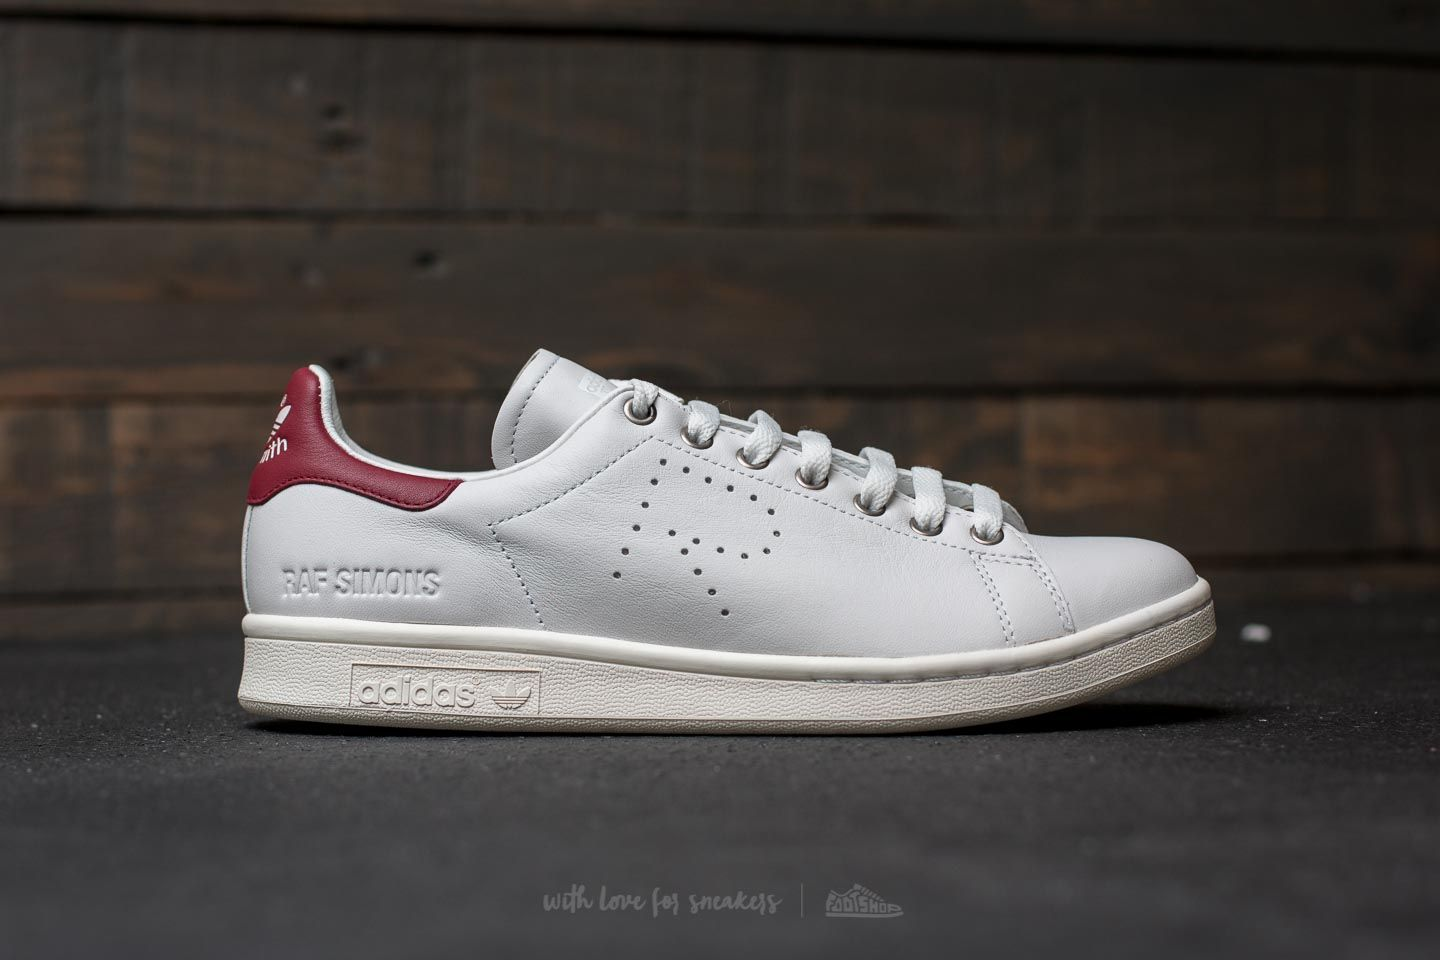 hot sale online bef6a 49819 ... ireland adidas x raf simons stan smith vintage white collegiate  burgundy at a great price 181